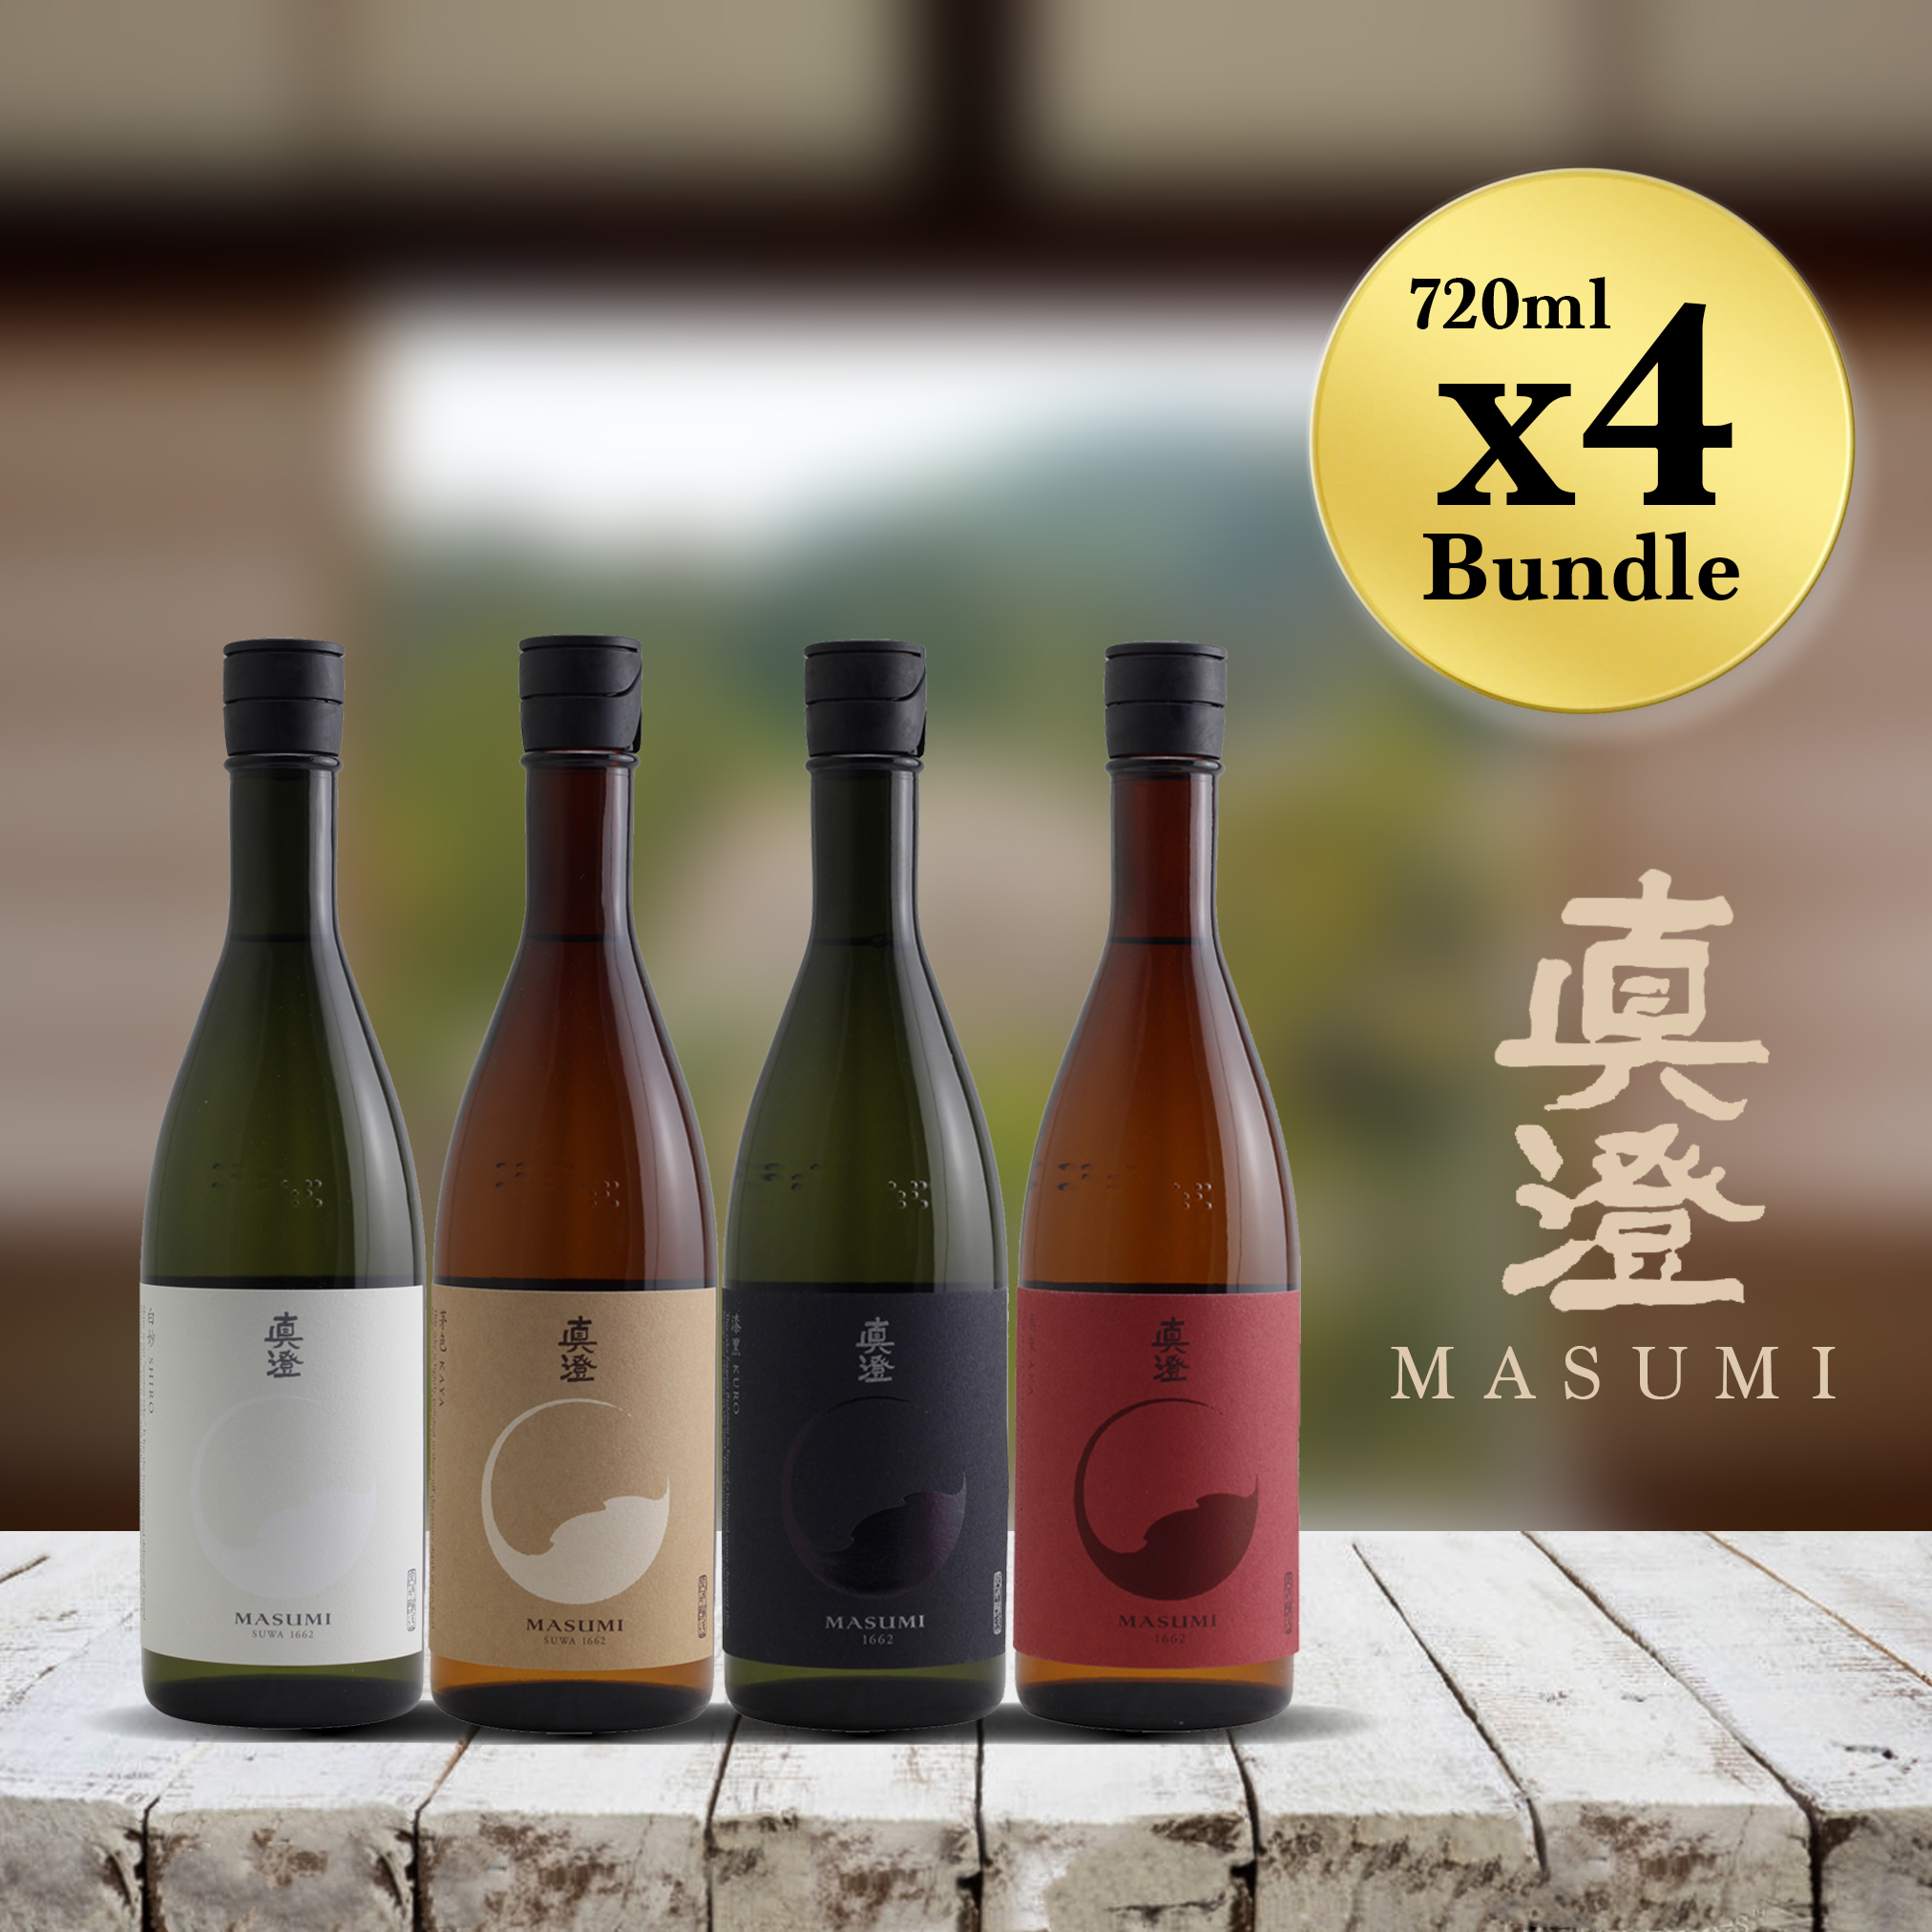 Masumi Sake - New Four Color  Flagship Bundle 720ml X4